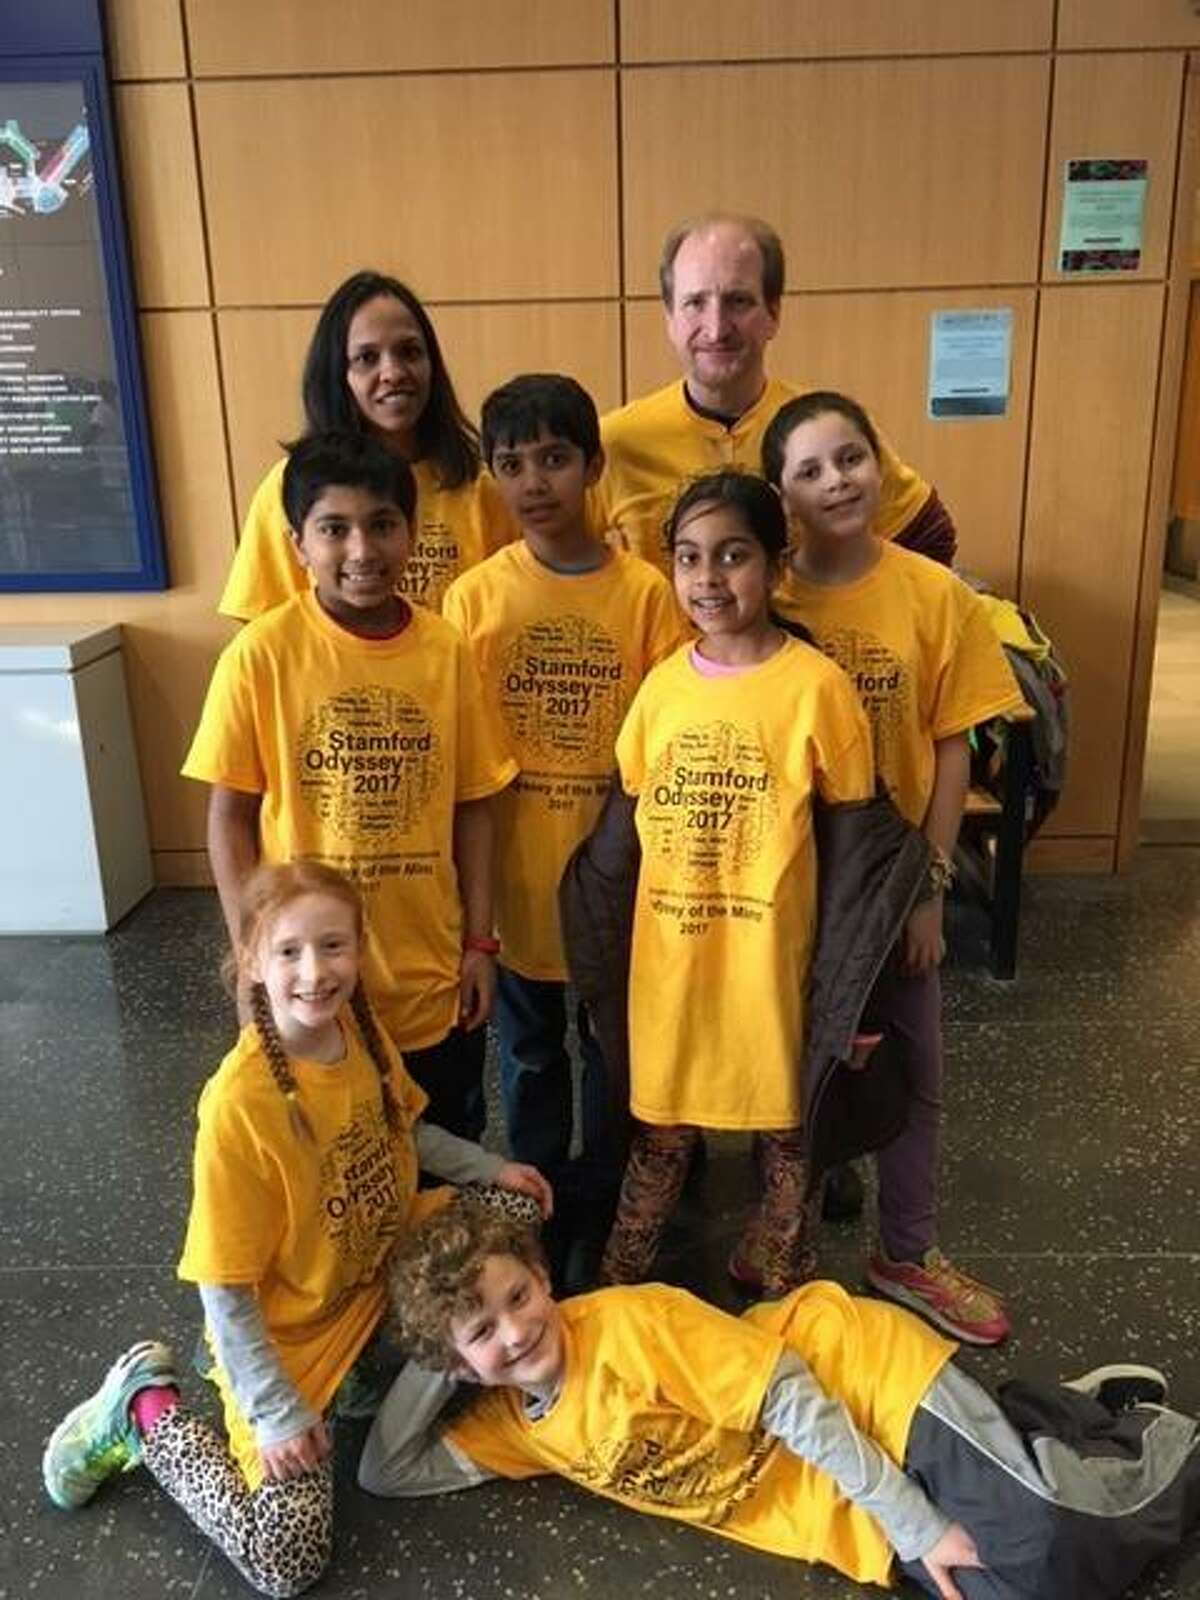 From left, coaches Rajni Chidambaram and Glenn Harper pose for a picture with Newfield Elementary School students Veeraj Shah Sidhanth Pharshy, Ananya Gupta and Riley Allyn in the second row and Alanna Harper and Wyatt Elsner in the front row during the Odyssey of the Mind statewide tournament at Southern Connecticut State University in New Haven, Conn., on March 18, 2017.